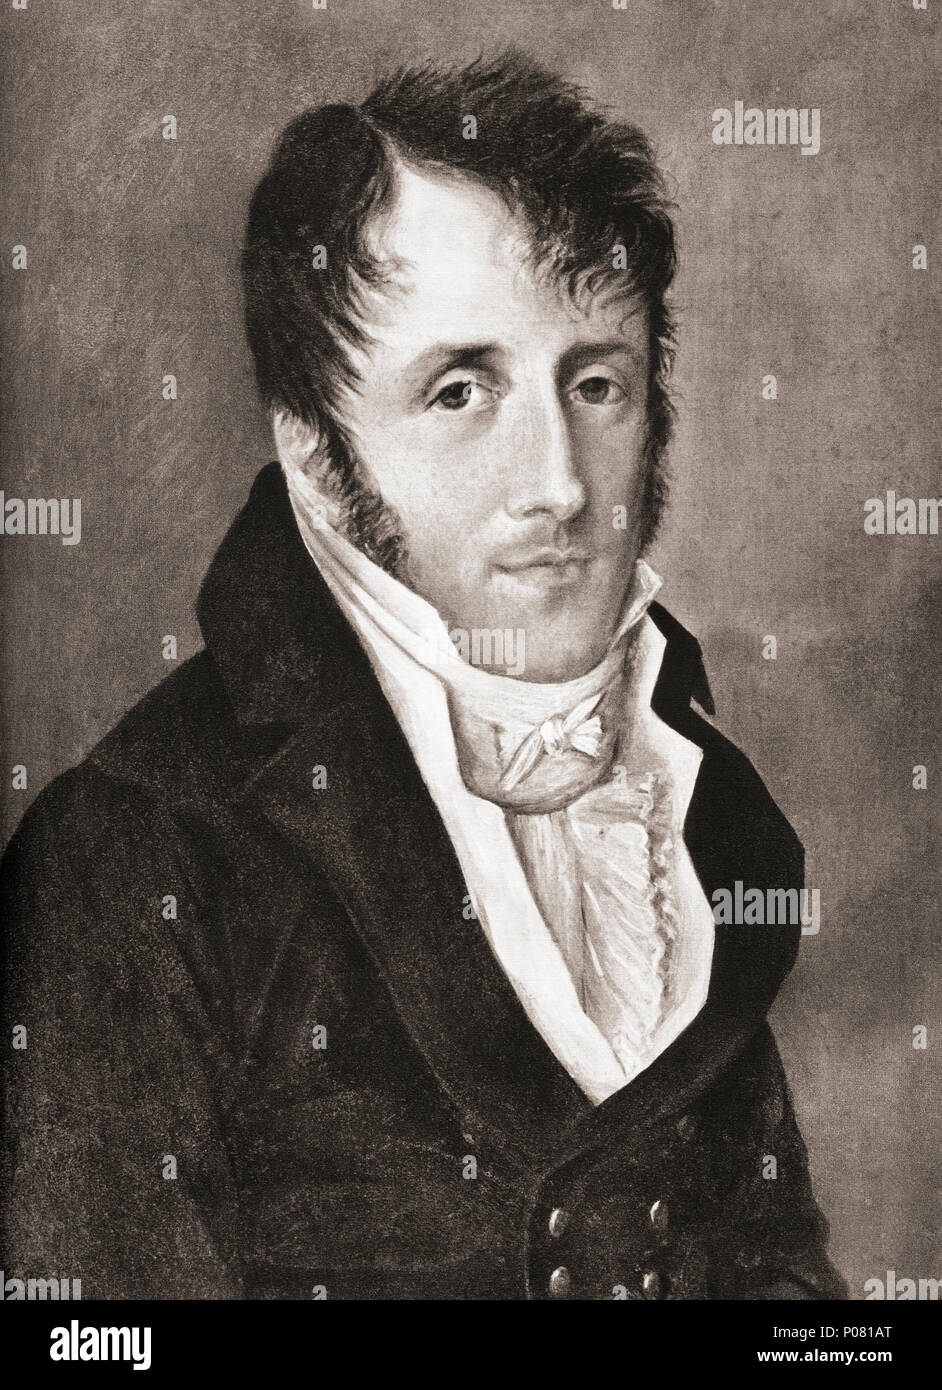 François-René (Auguste), vicomte de Chateaubriand, 1768 – 1848.  French writer, politician, diplomat and historian,  considered the founder of Romanticism in French literature.  After a contemporary print. - Stock Image